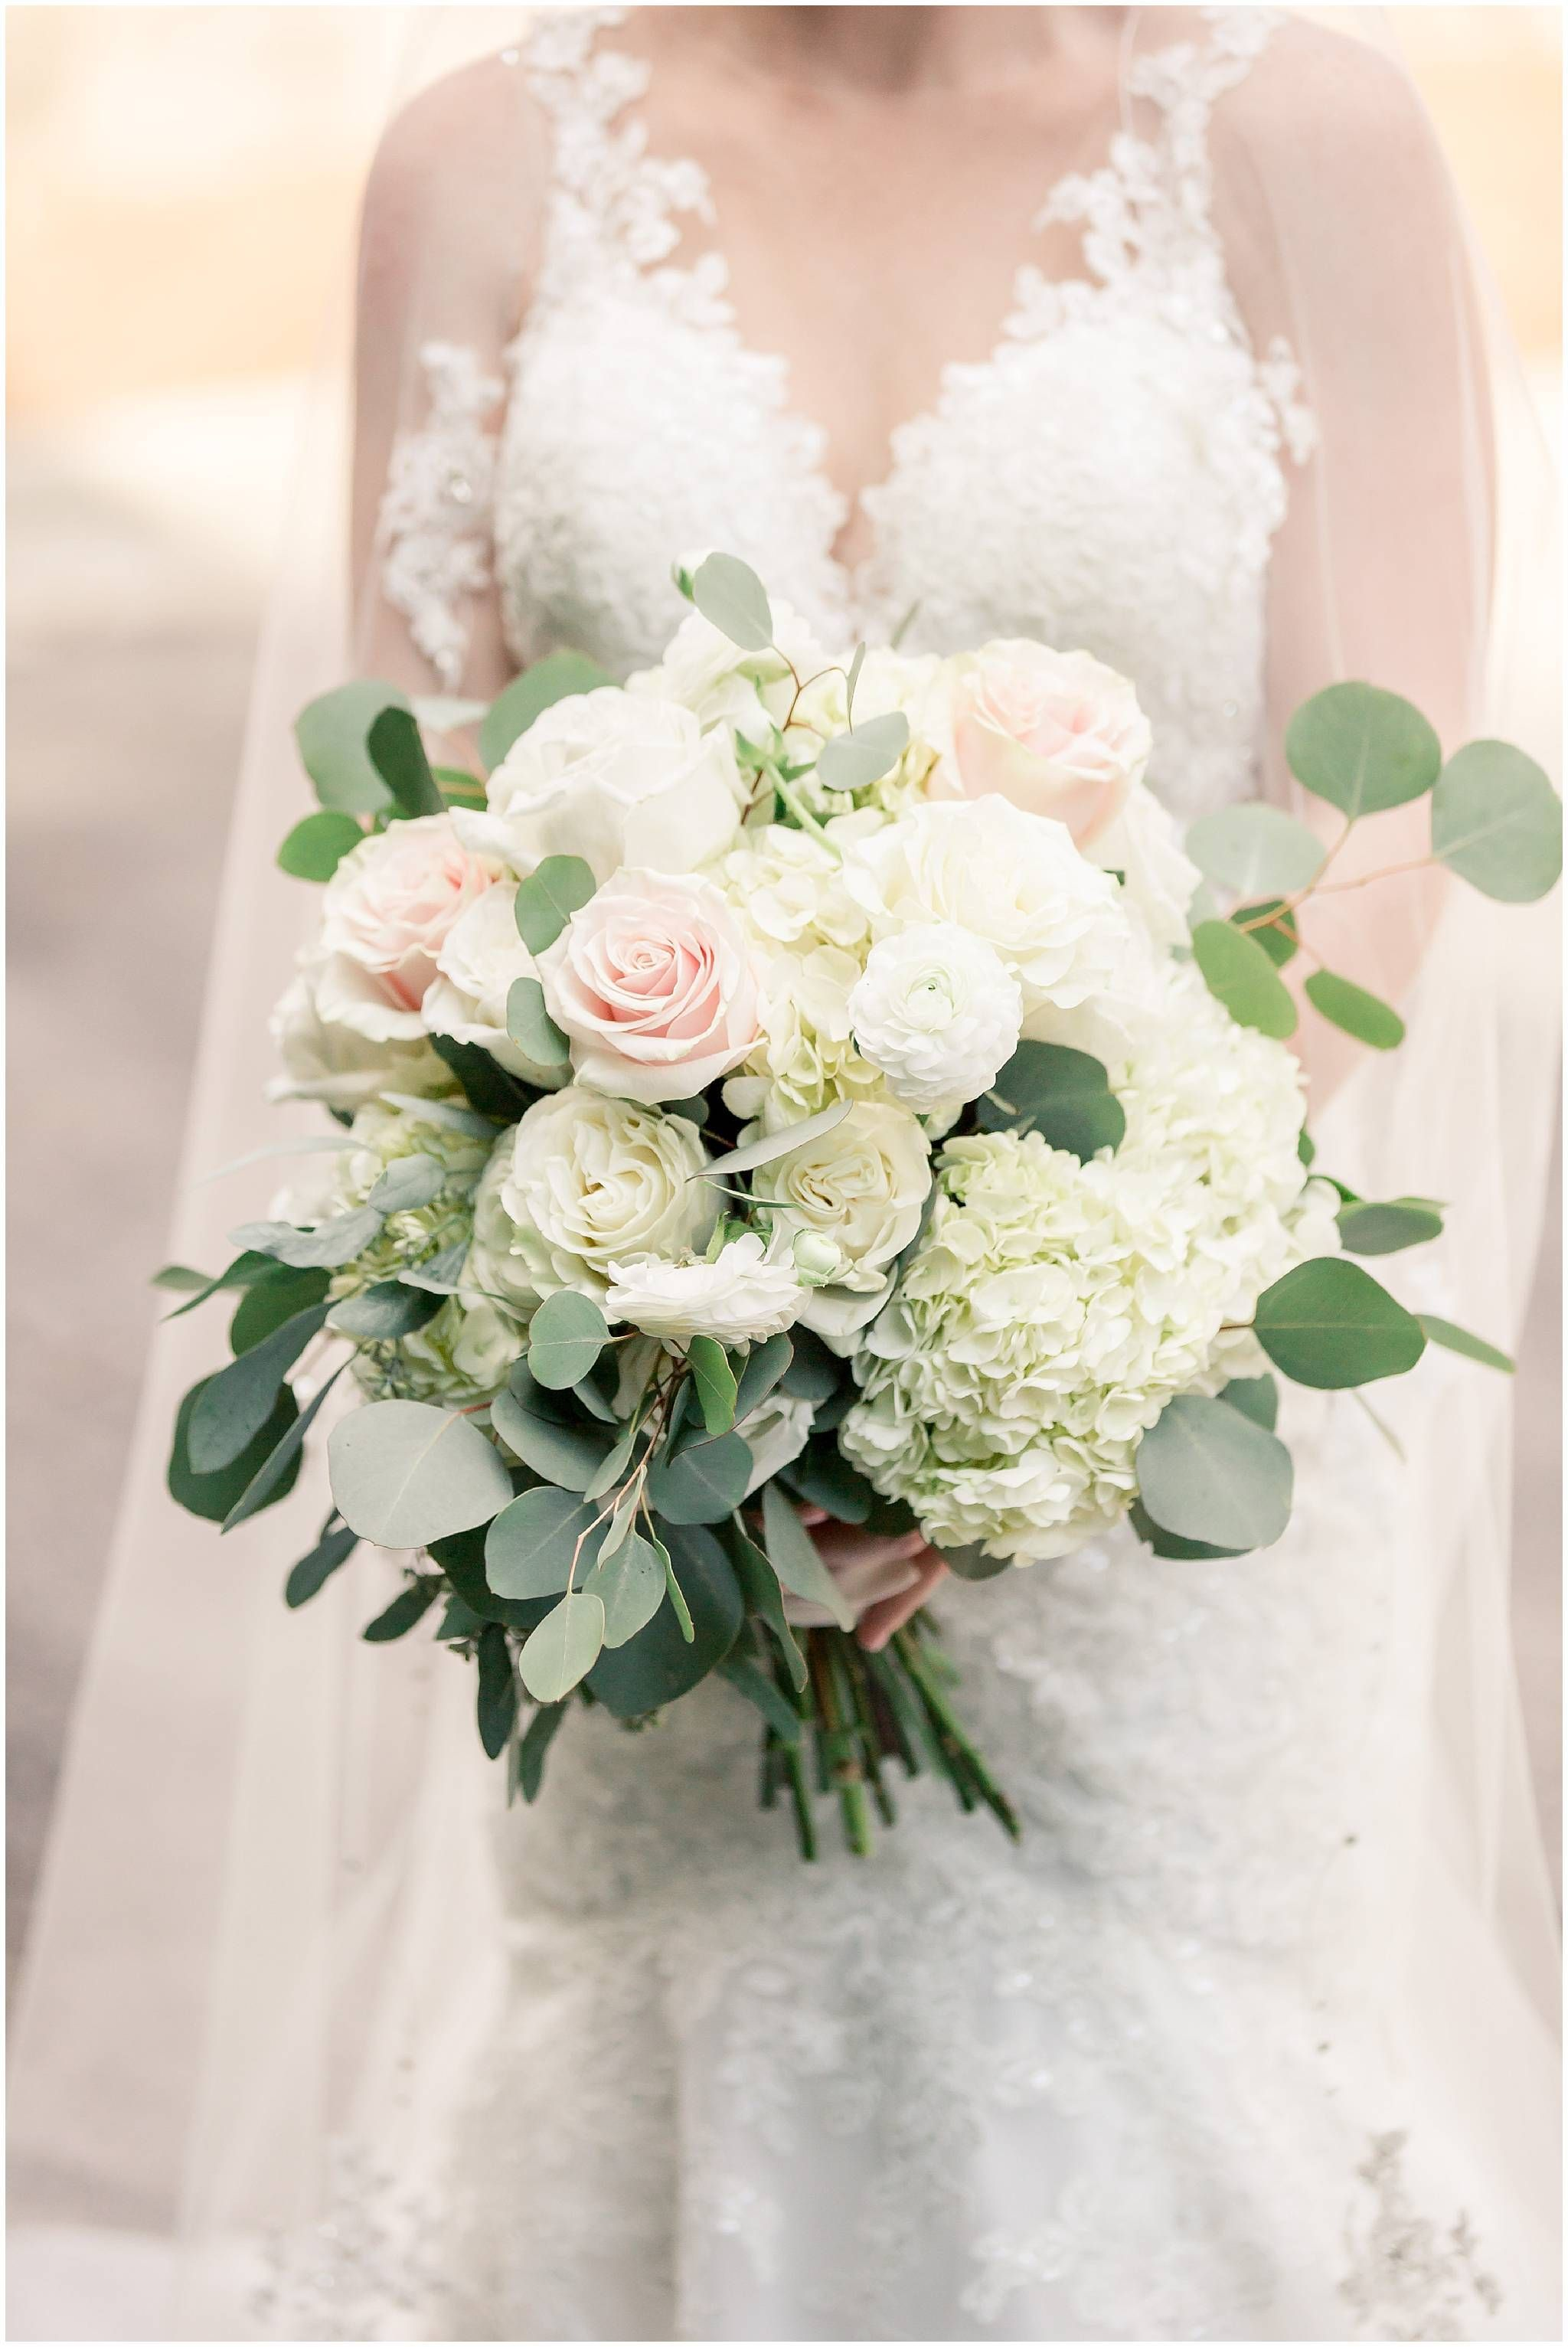 Picking The Perfect Flower Wedding Bouquet Blush Bridal Bouquet